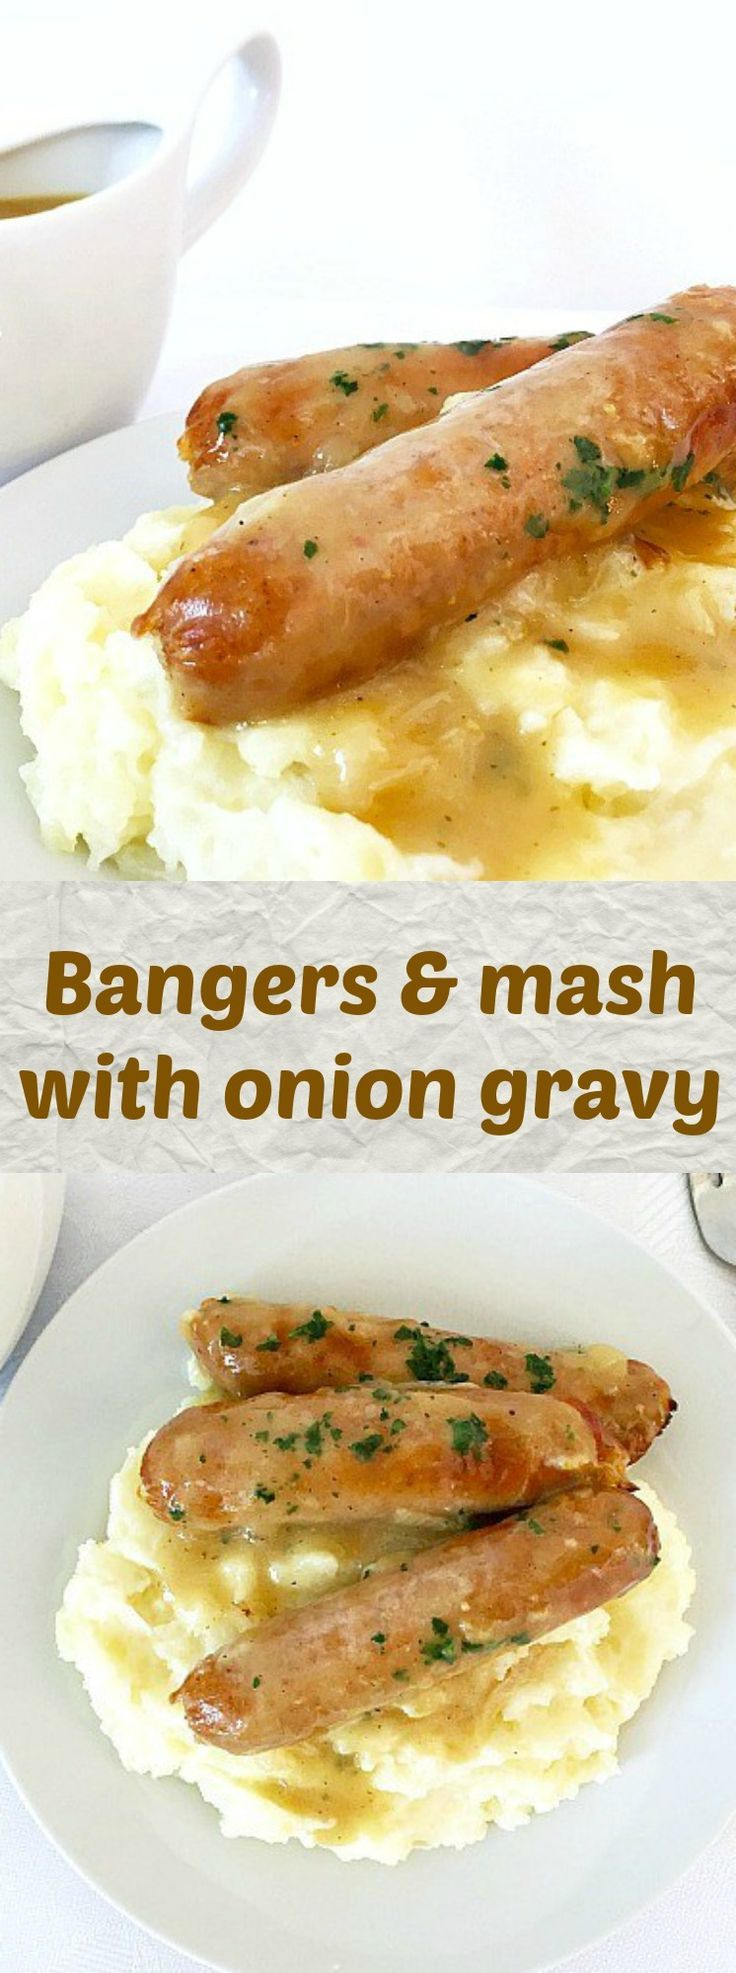 Bangers & mash recipe with onion gravy, a true British classic that pretty much sums up what comfort food is all about. Enjoyed throughout the year, but even more on Bonfire Night, this recipe is truly amazing!